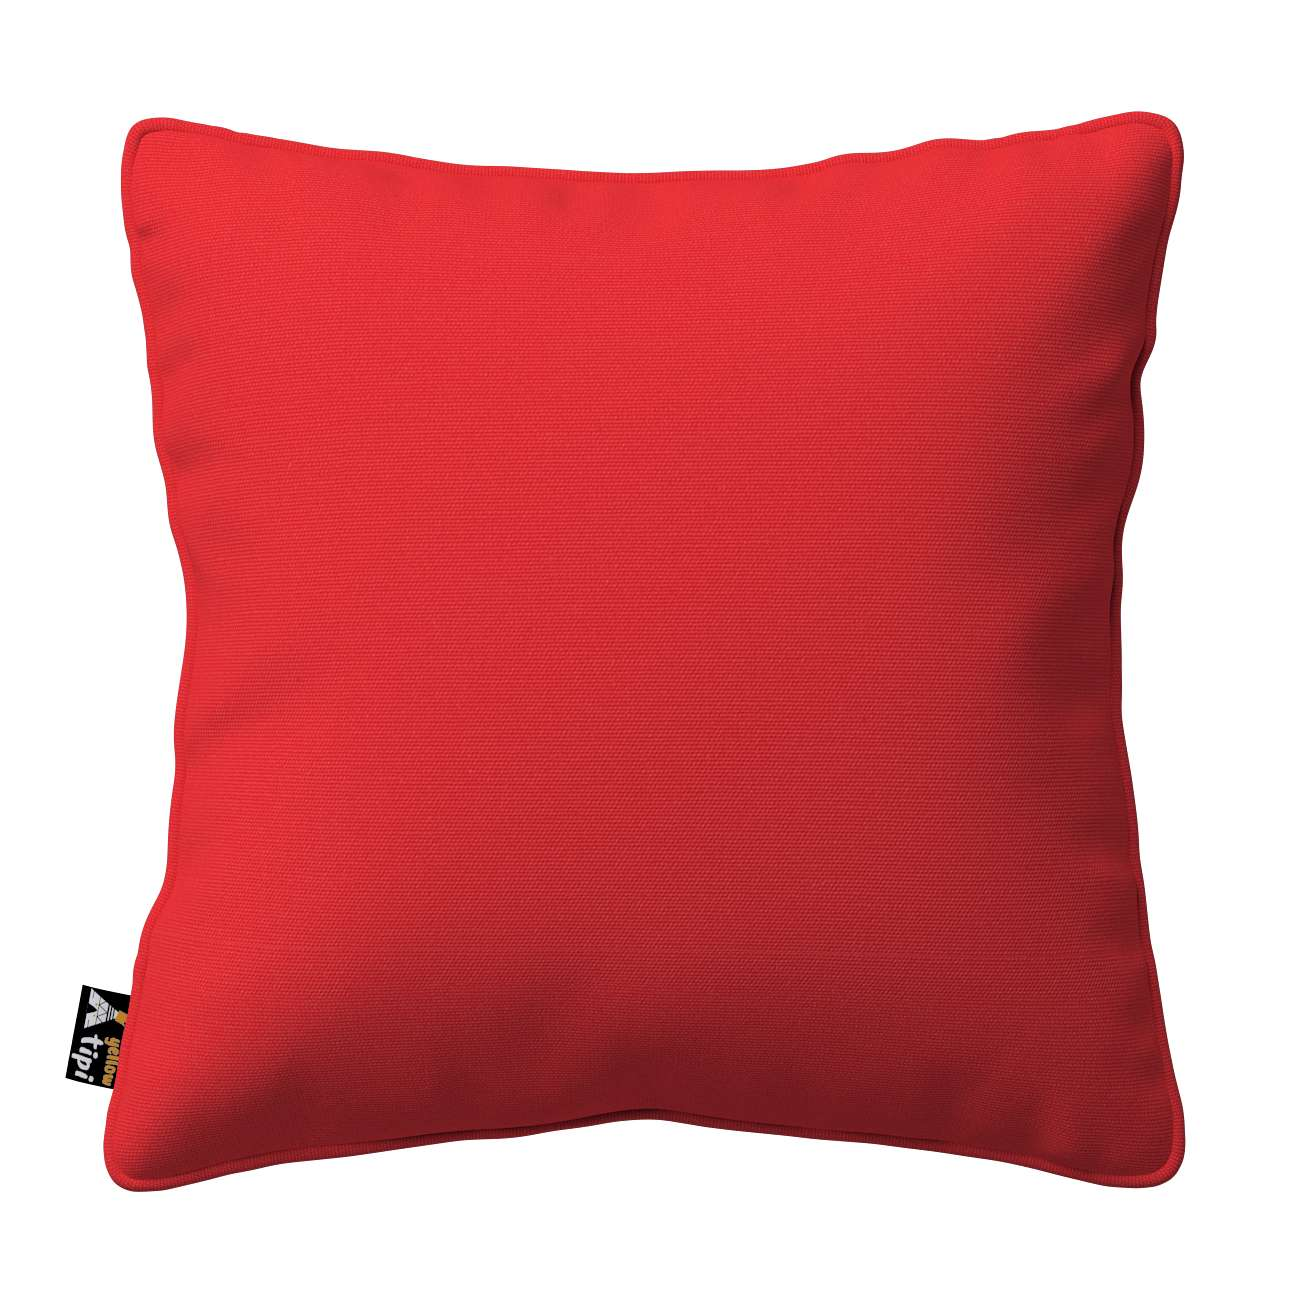 Lola piped cushion cover in collection Happiness, fabric: 133-43